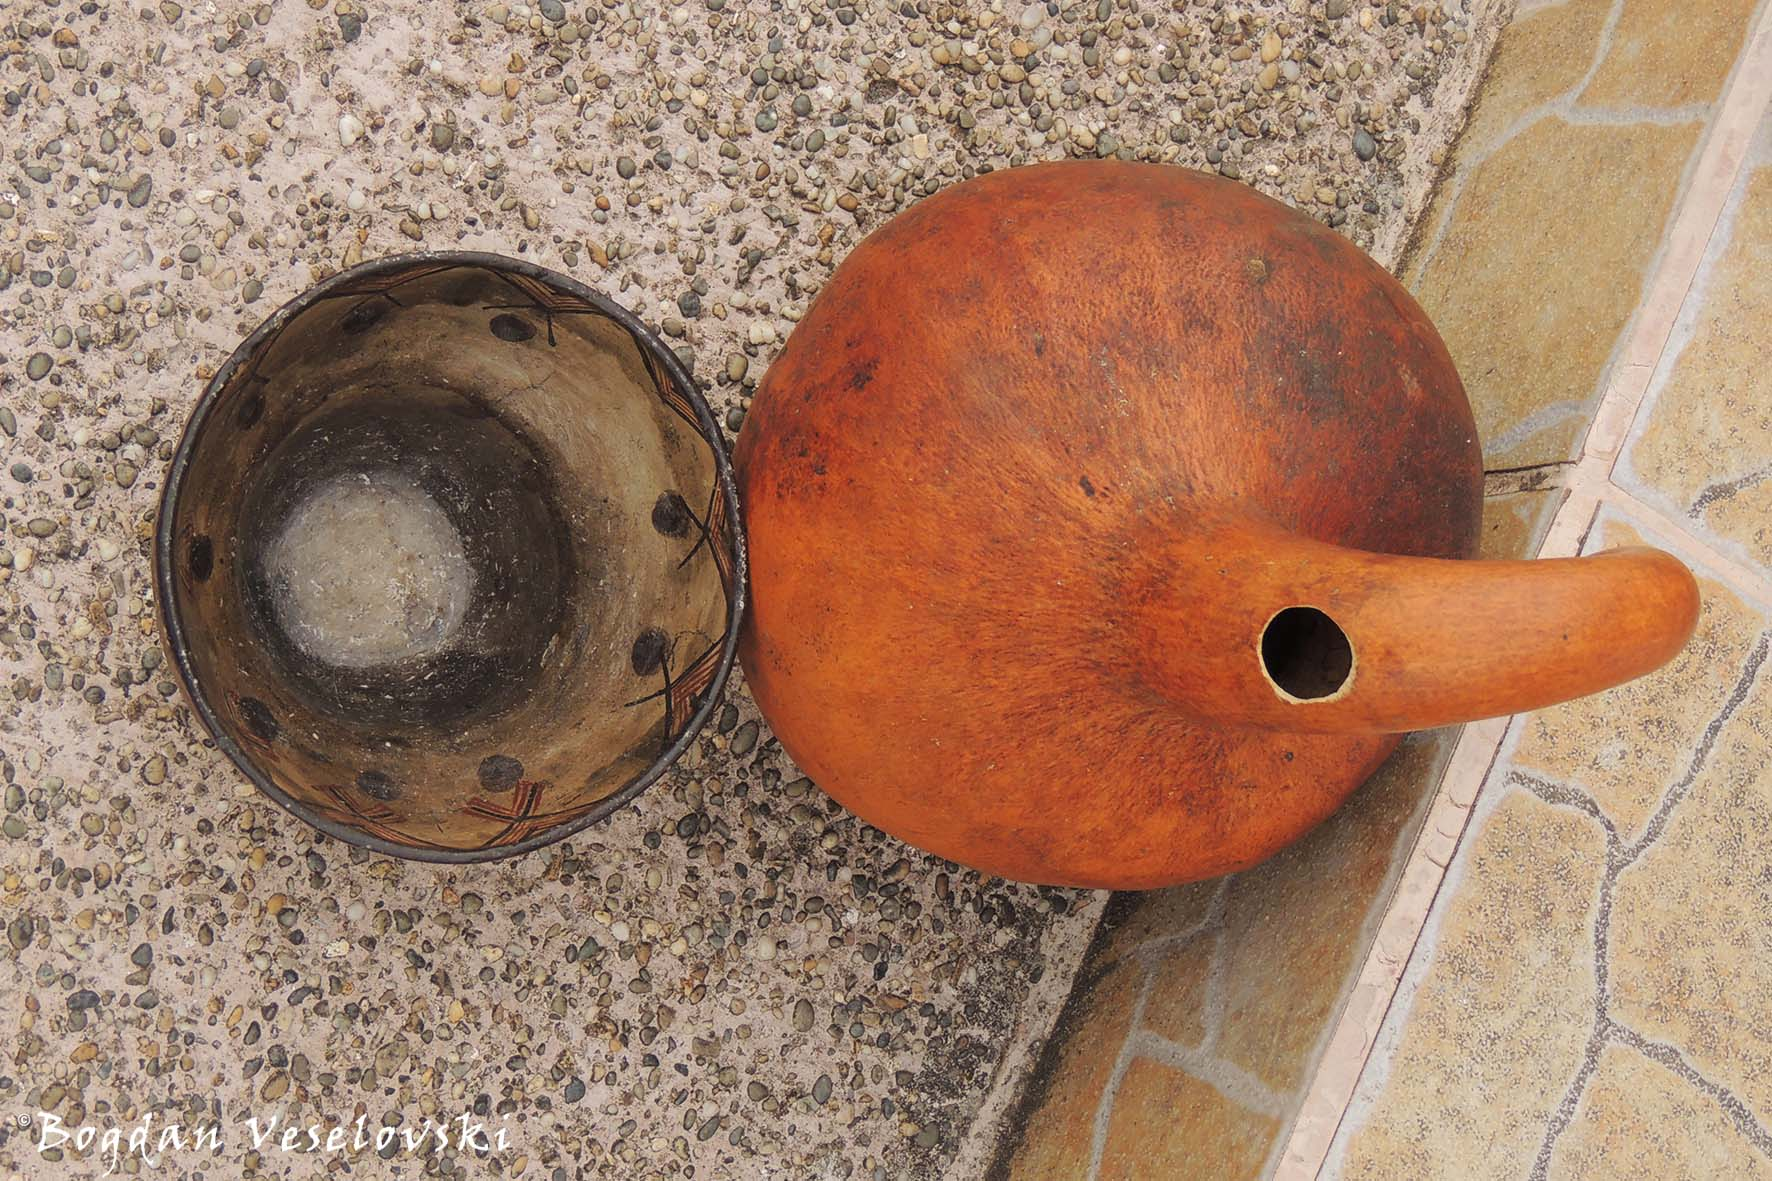 Shuar household appliances, weapons & musical instruments